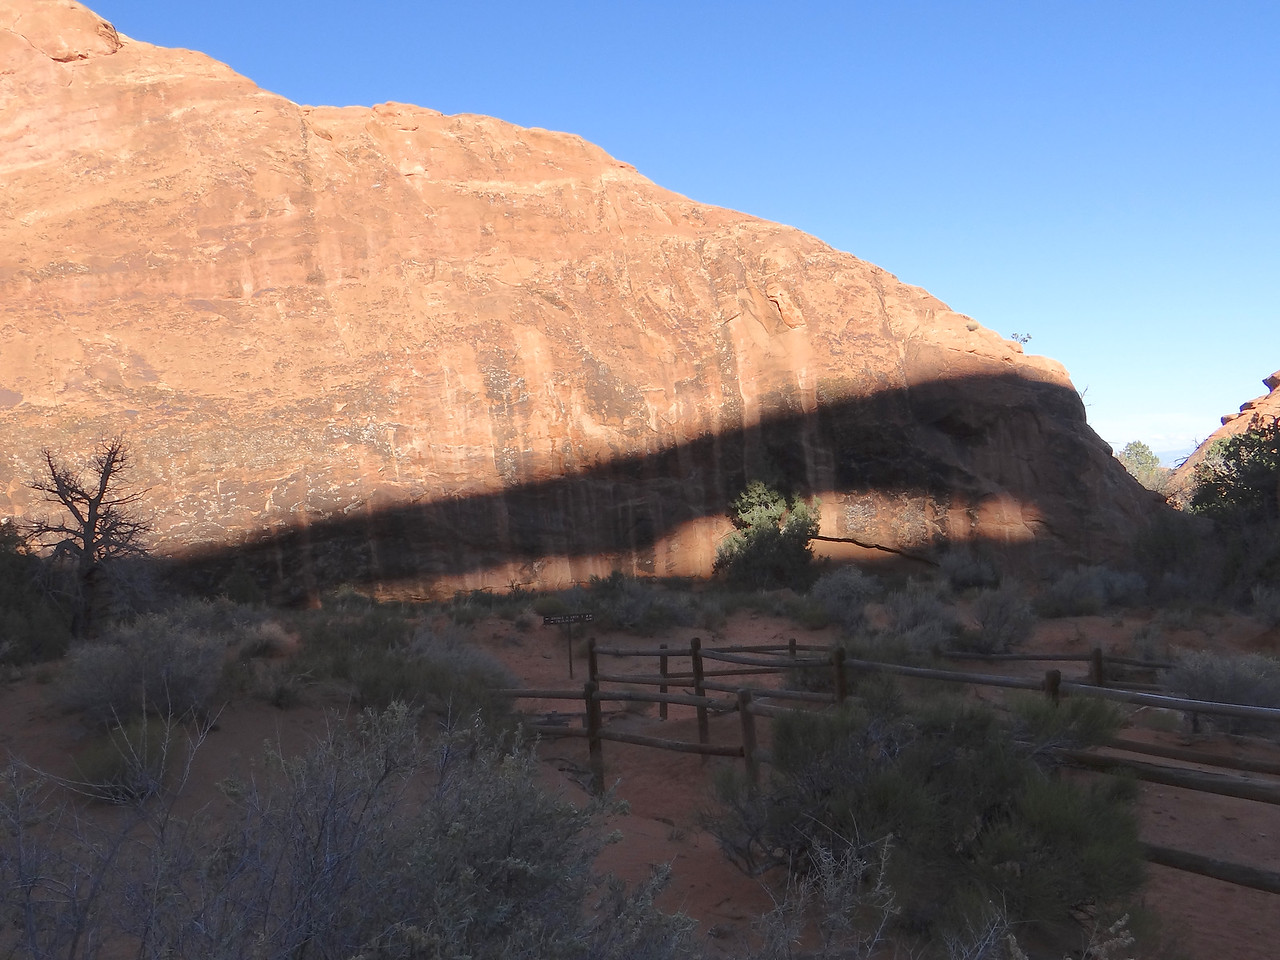 The shadow of 280 ft long Landscape Arch in Arches Natl Park.